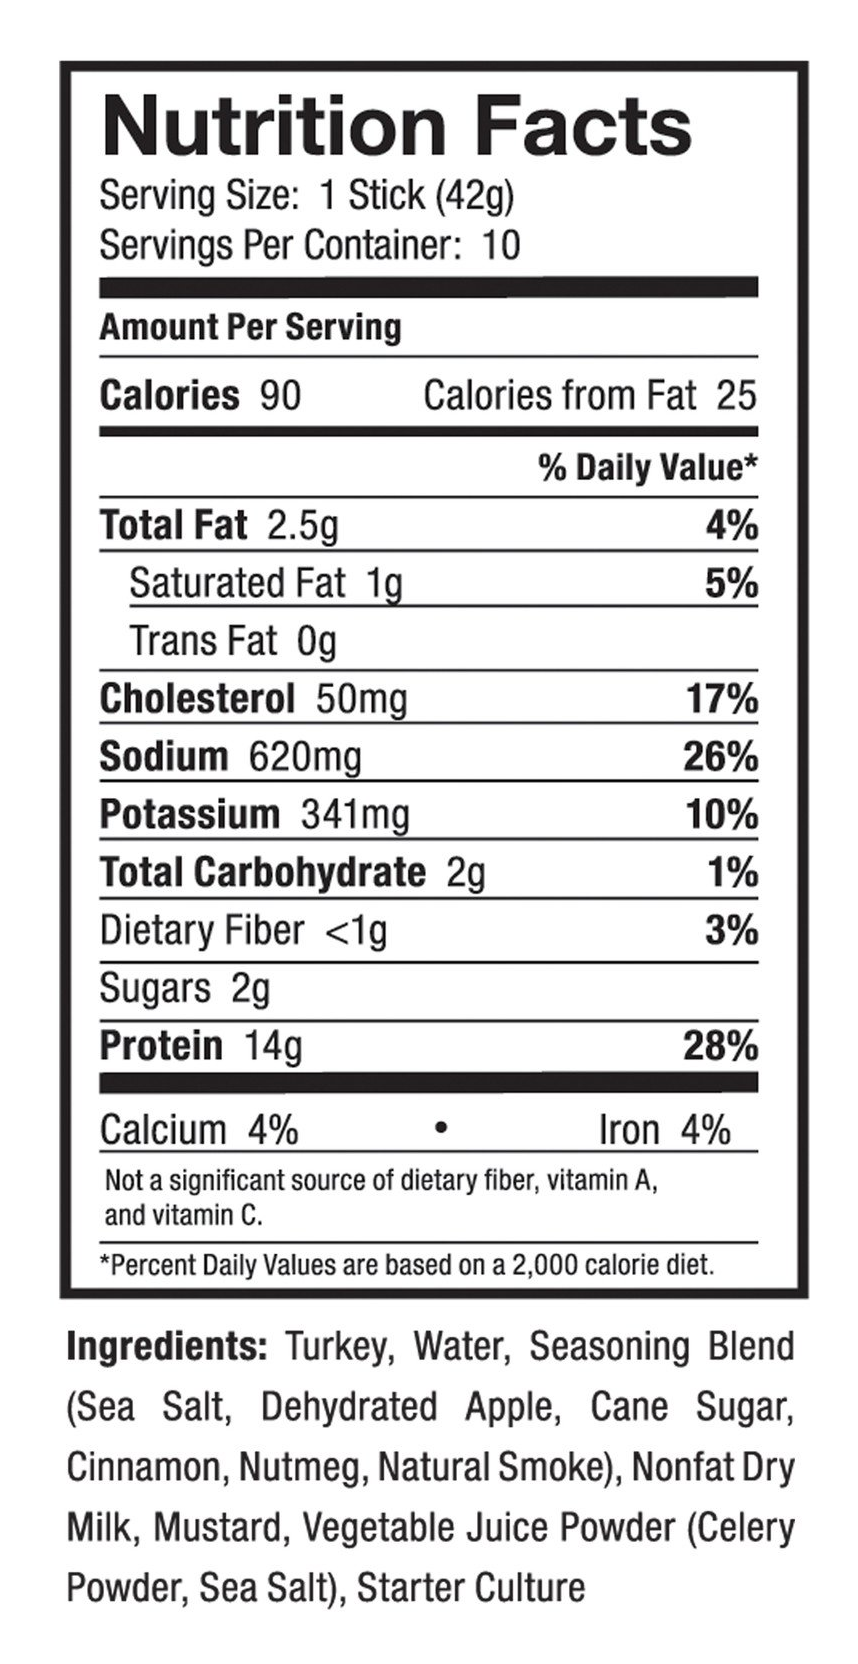 applewood_nutrition.png